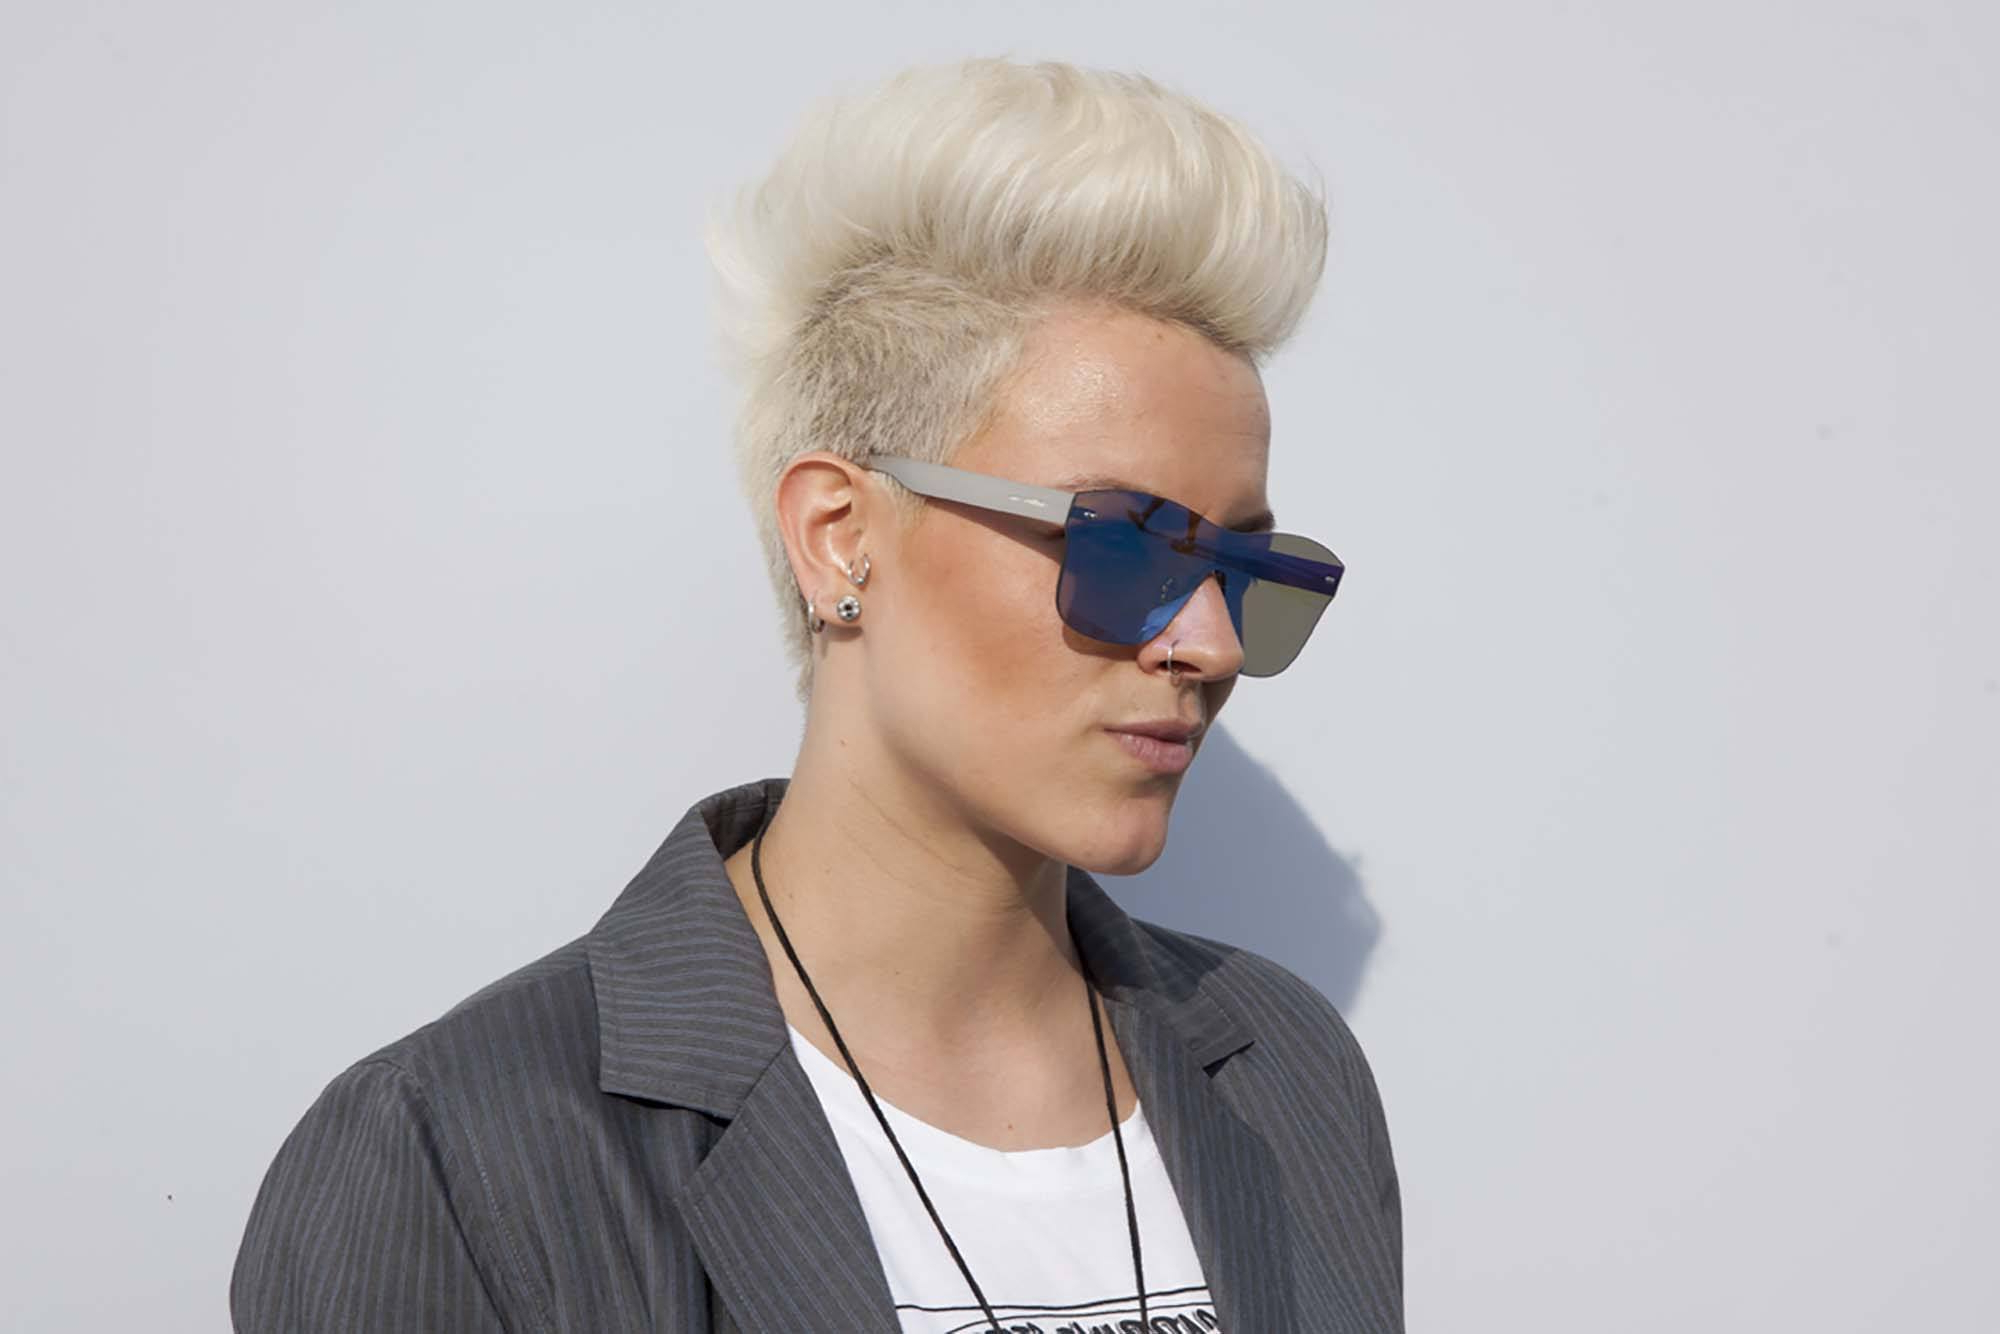 8 Fashionable Mohawk Hairstyles For Women: From Haute To Regarding Most Recent Classic Blonde Mohawk Hairstyles For Women (View 7 of 20)